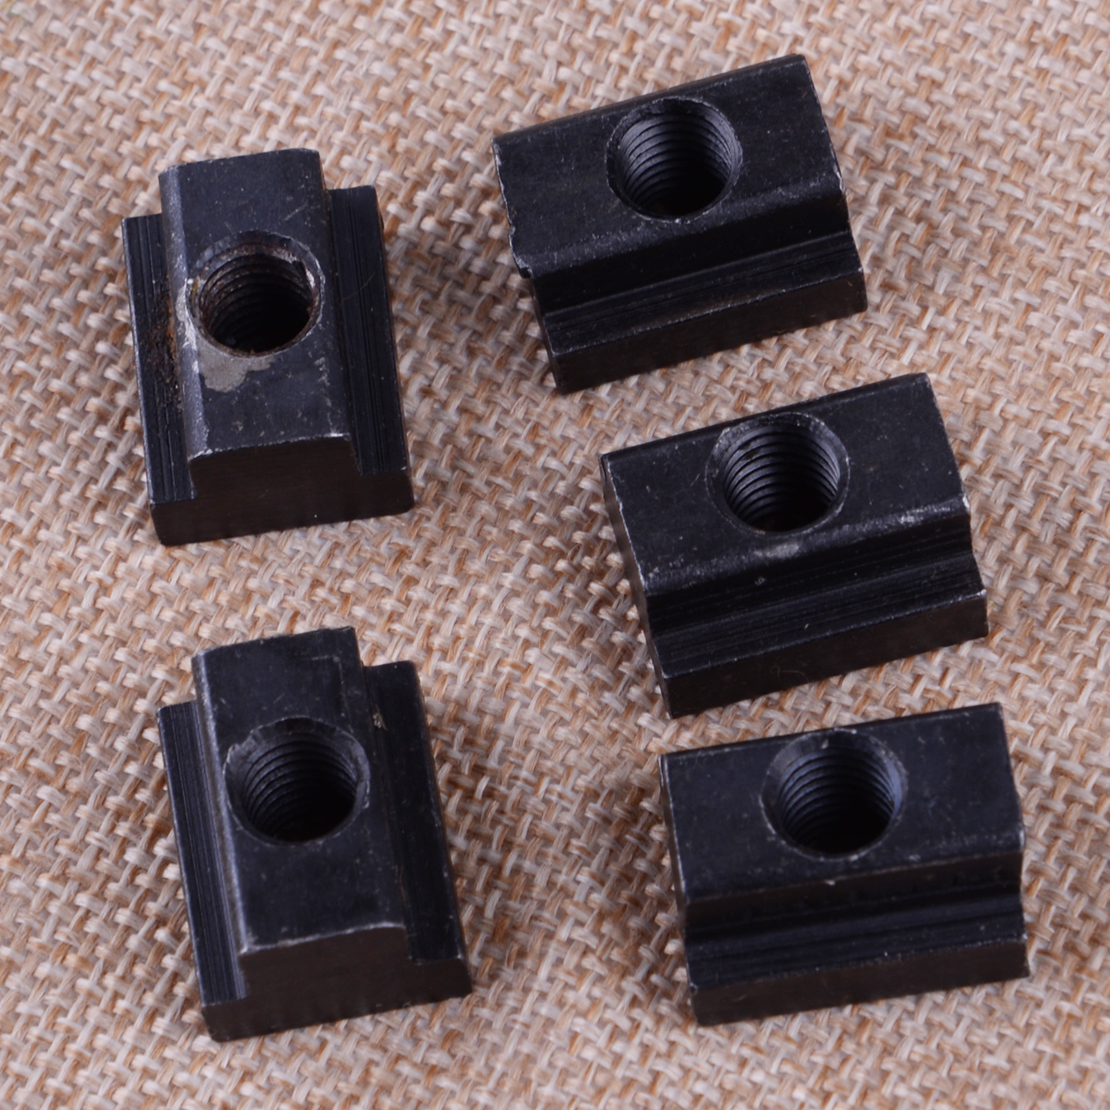 5Pcs Black Steel Oxide Finish T Slot Nuts M8 Threads Machine Tool for T-Slot Aluminum Extrusions to Connect Other Parts Fricgore Spare Parts